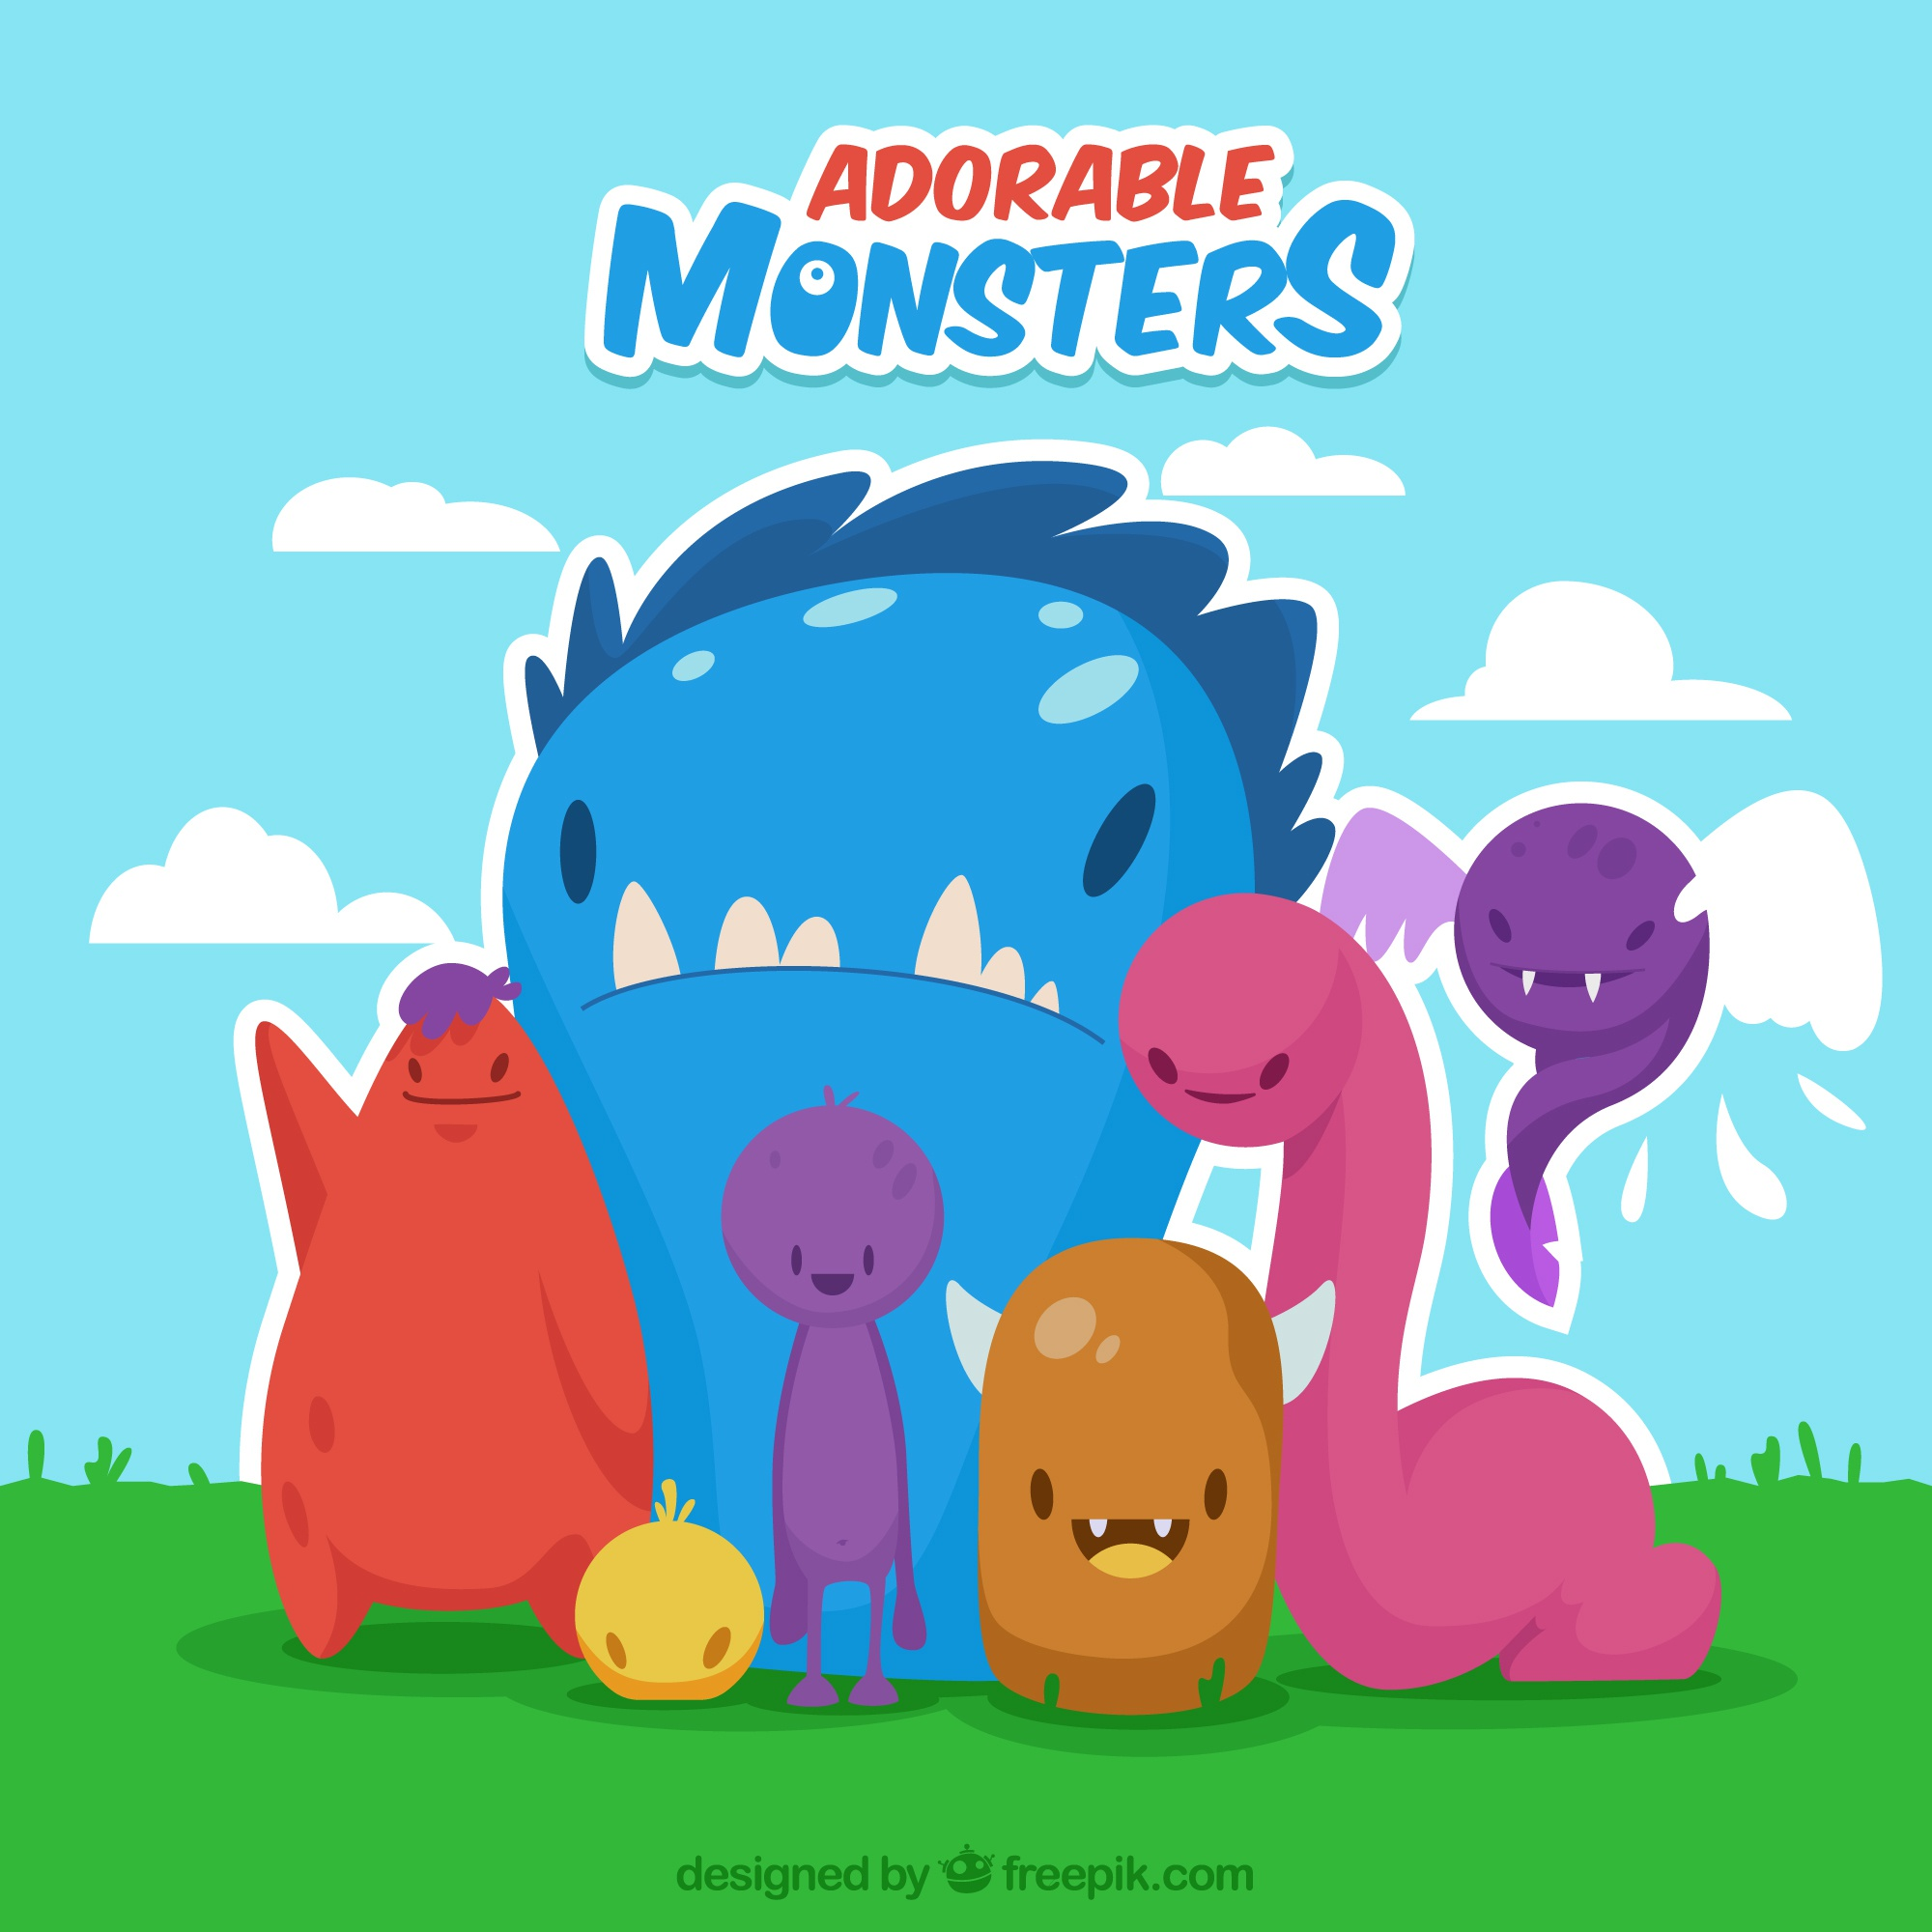 Adorable monsters